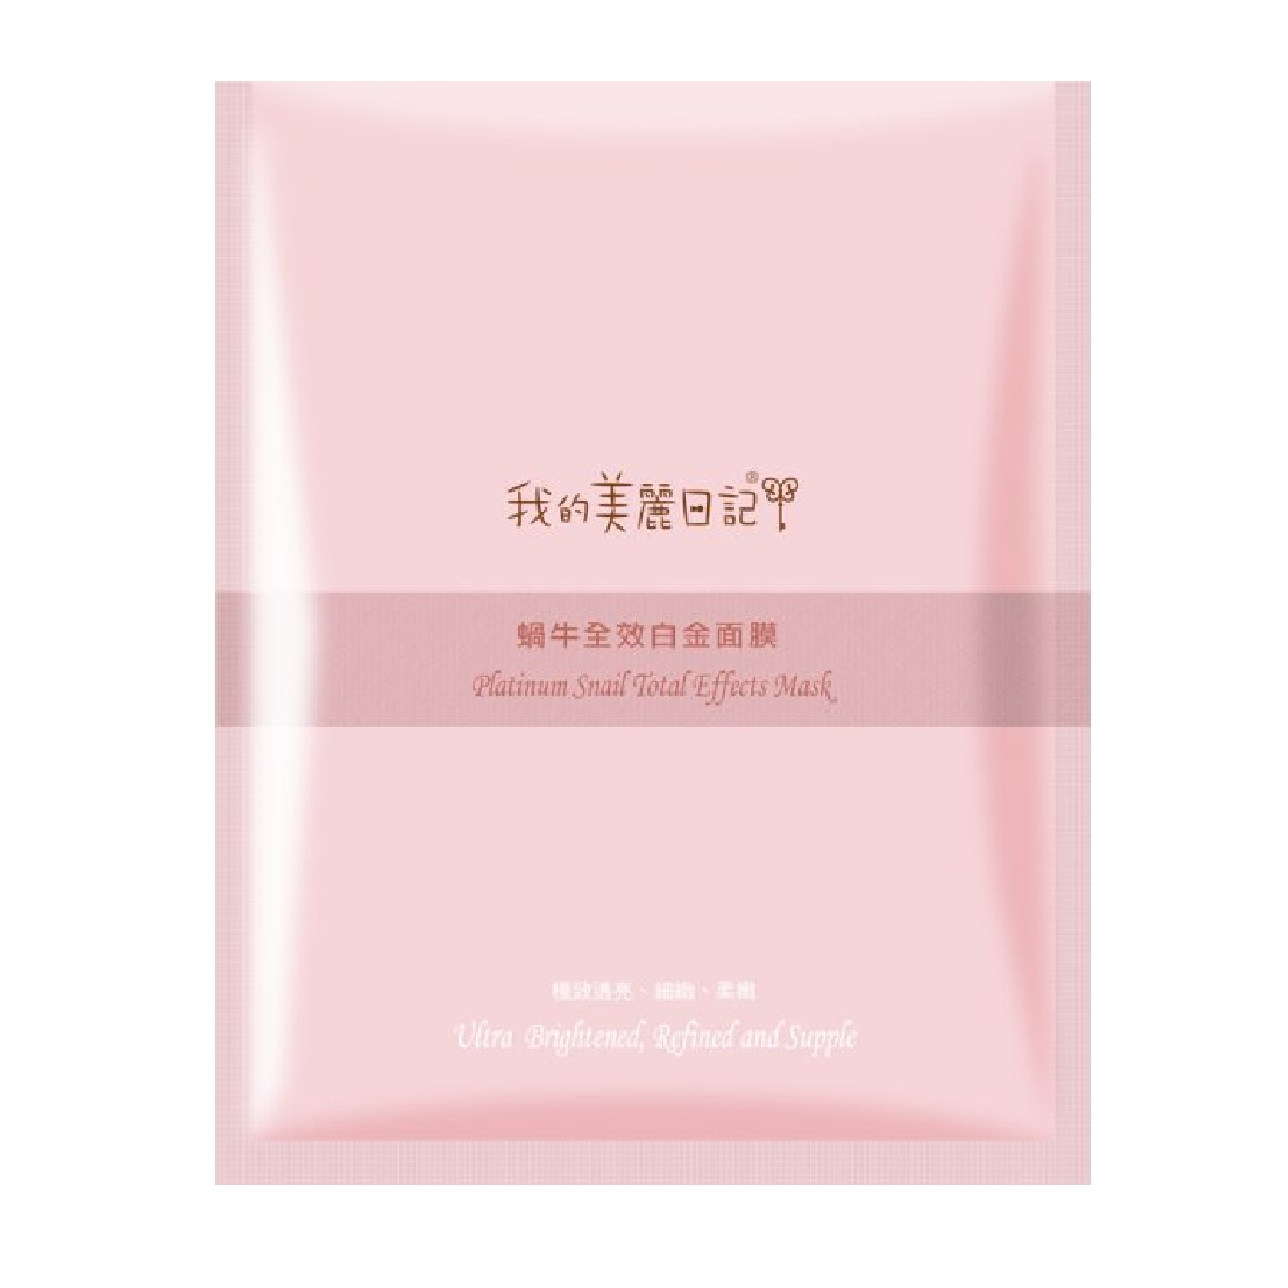 mat-na-my-beauty-diary-platinum-snail-total-effects-mask-review-thanh-phan-gia-cong-dung-28